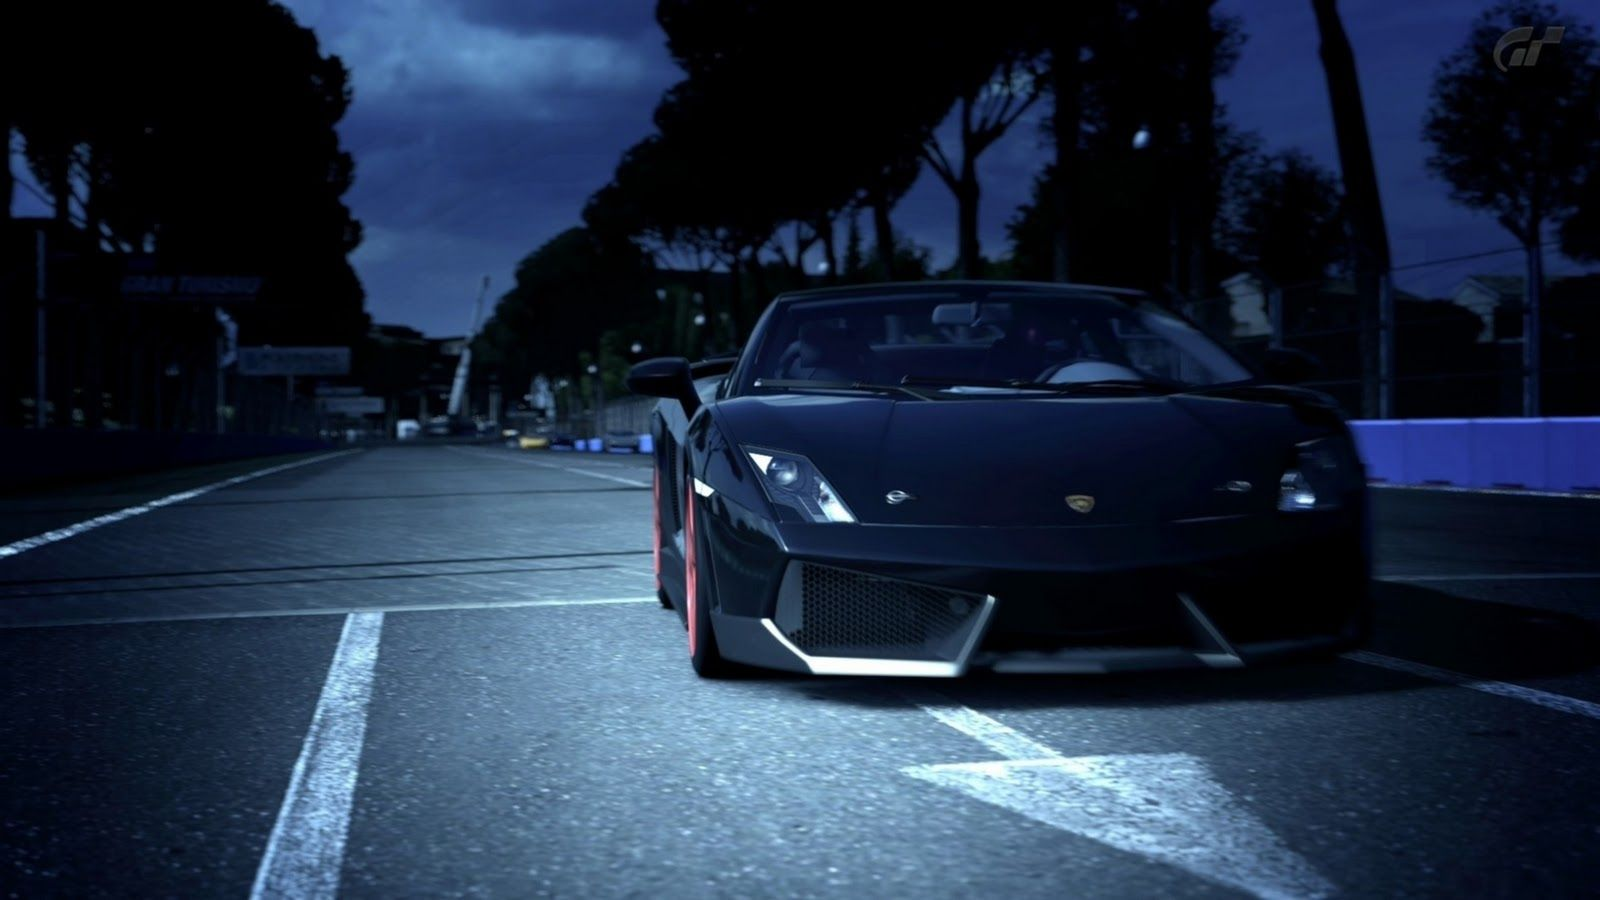 3d Moving Wallpaper High Quality Free Download Moving Wallpapers Lamborghini Gallardo Wallpaper